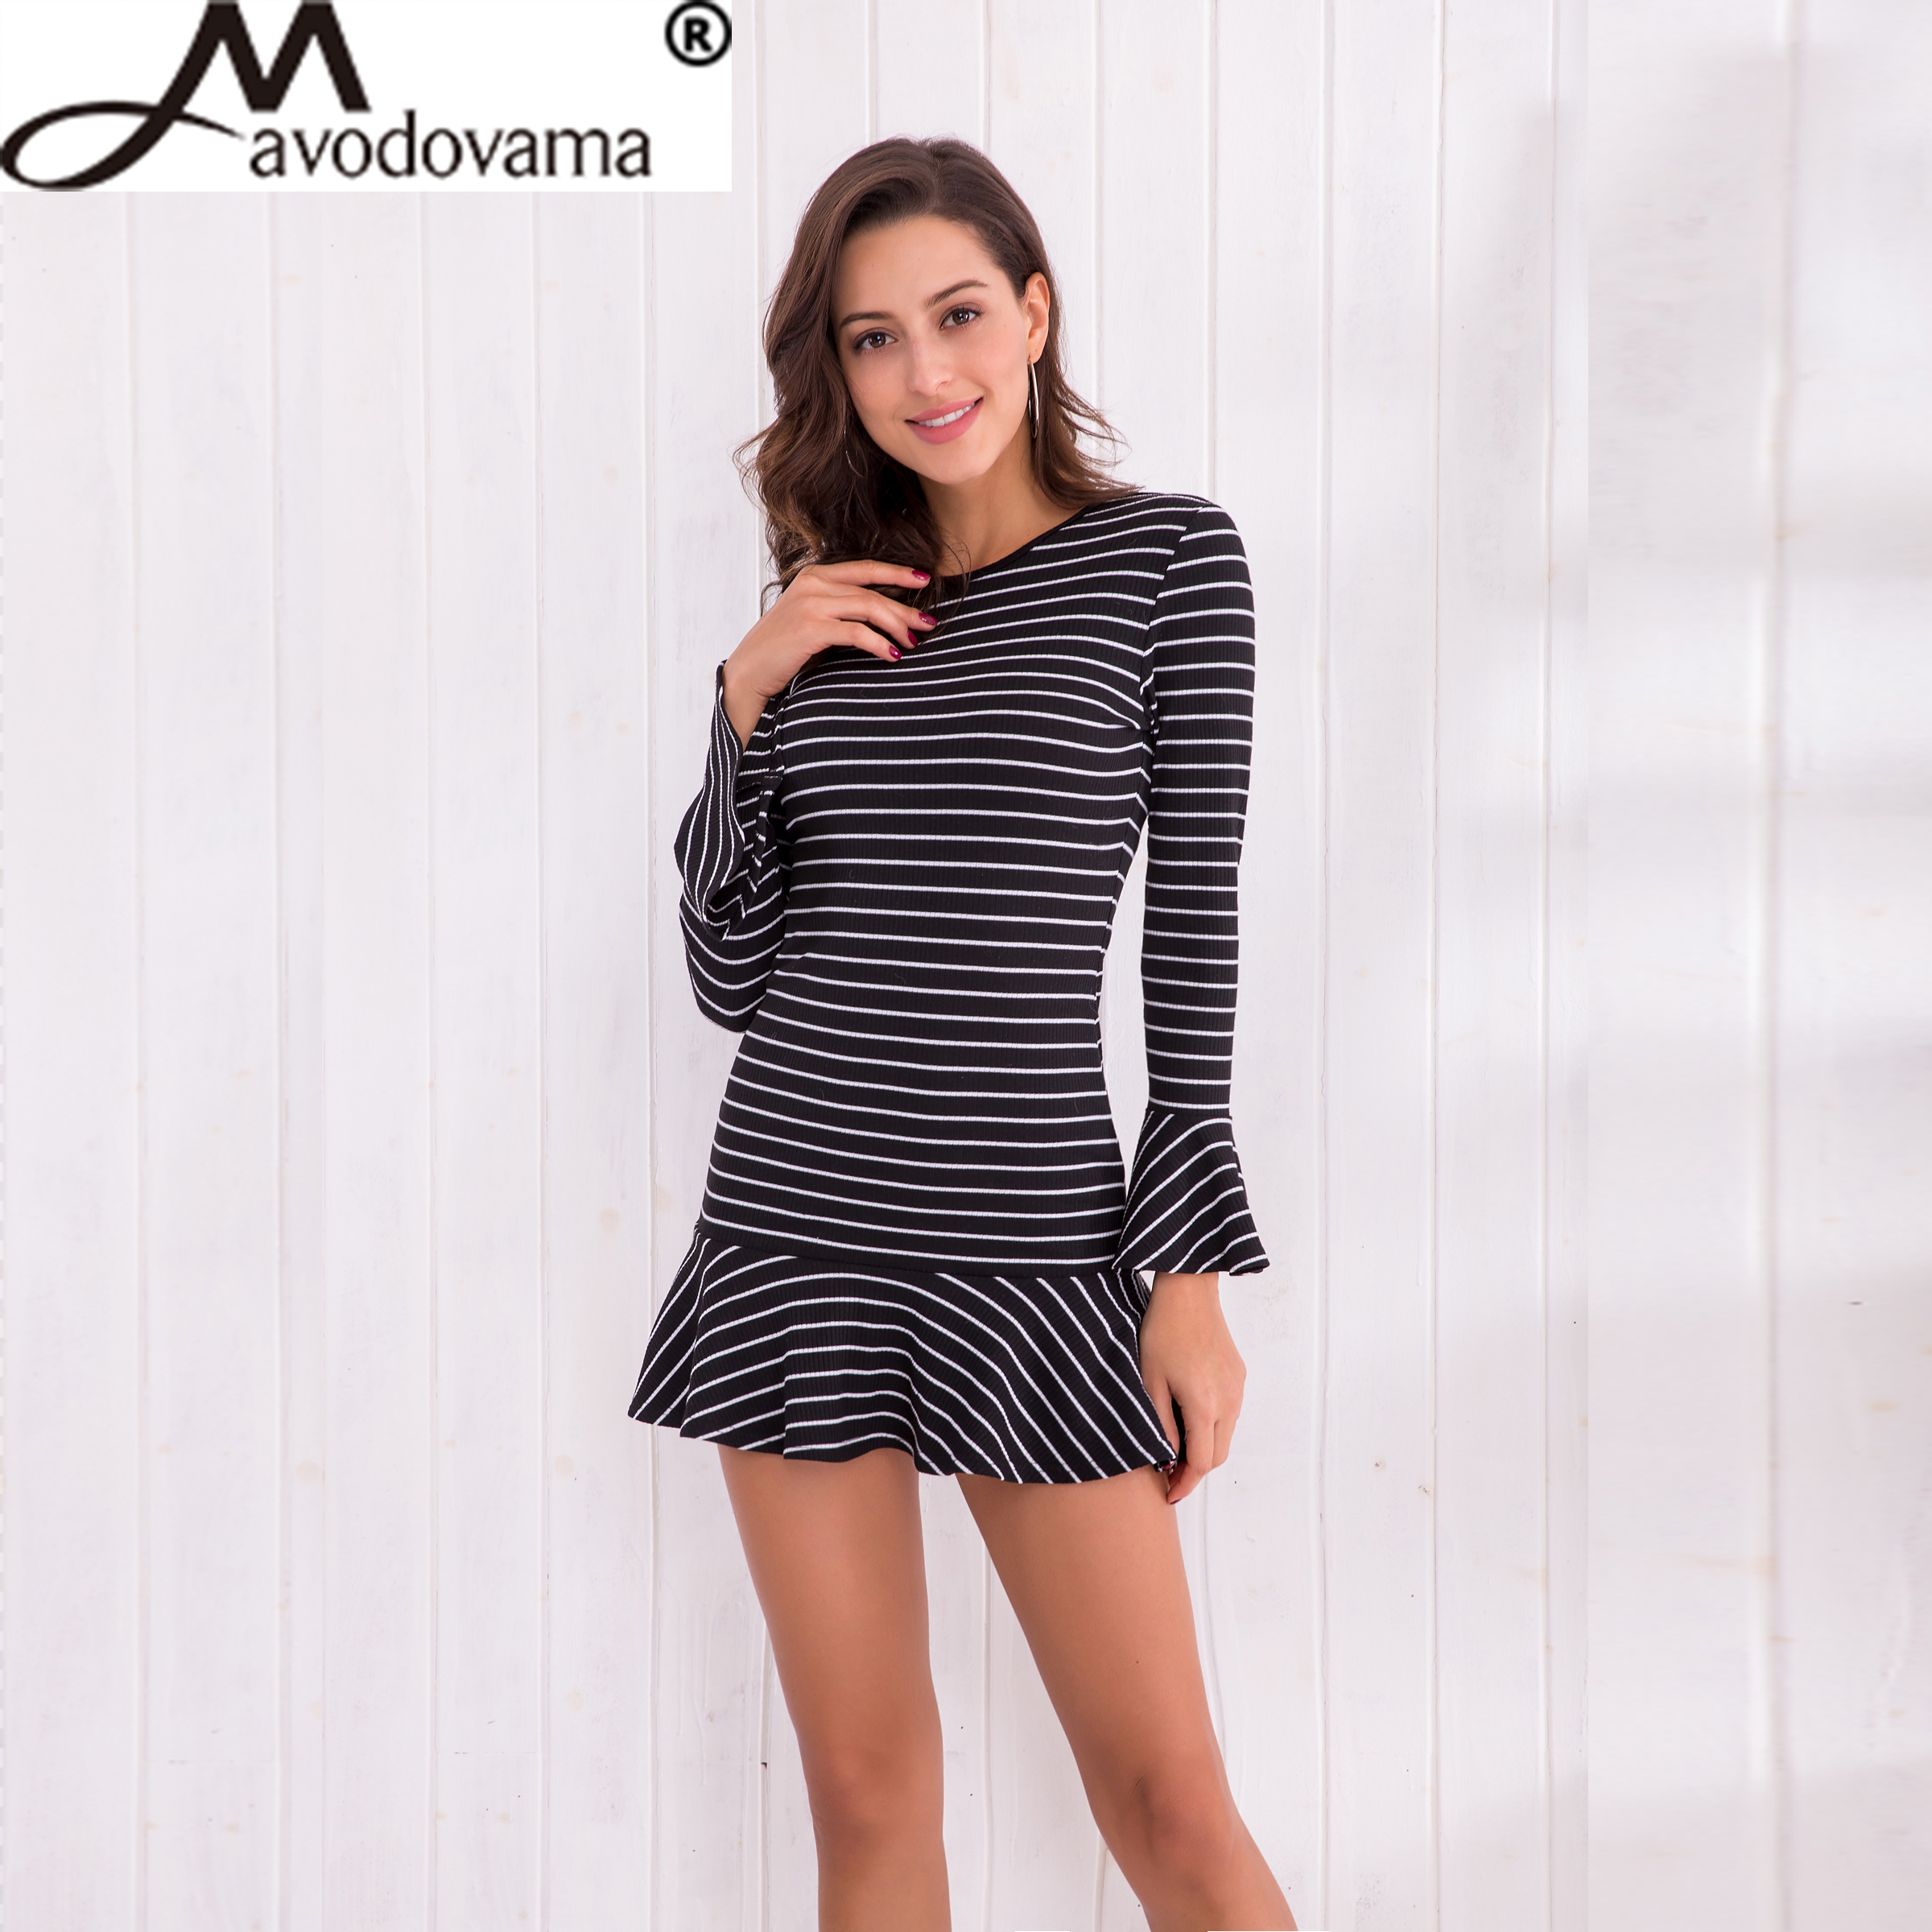 Avodovama M Fashion Casual Sexy Bandage Knitted Backless Dress Women Stripe Solid Slim Flare Sleeve Elegant Party Dresses elegant m